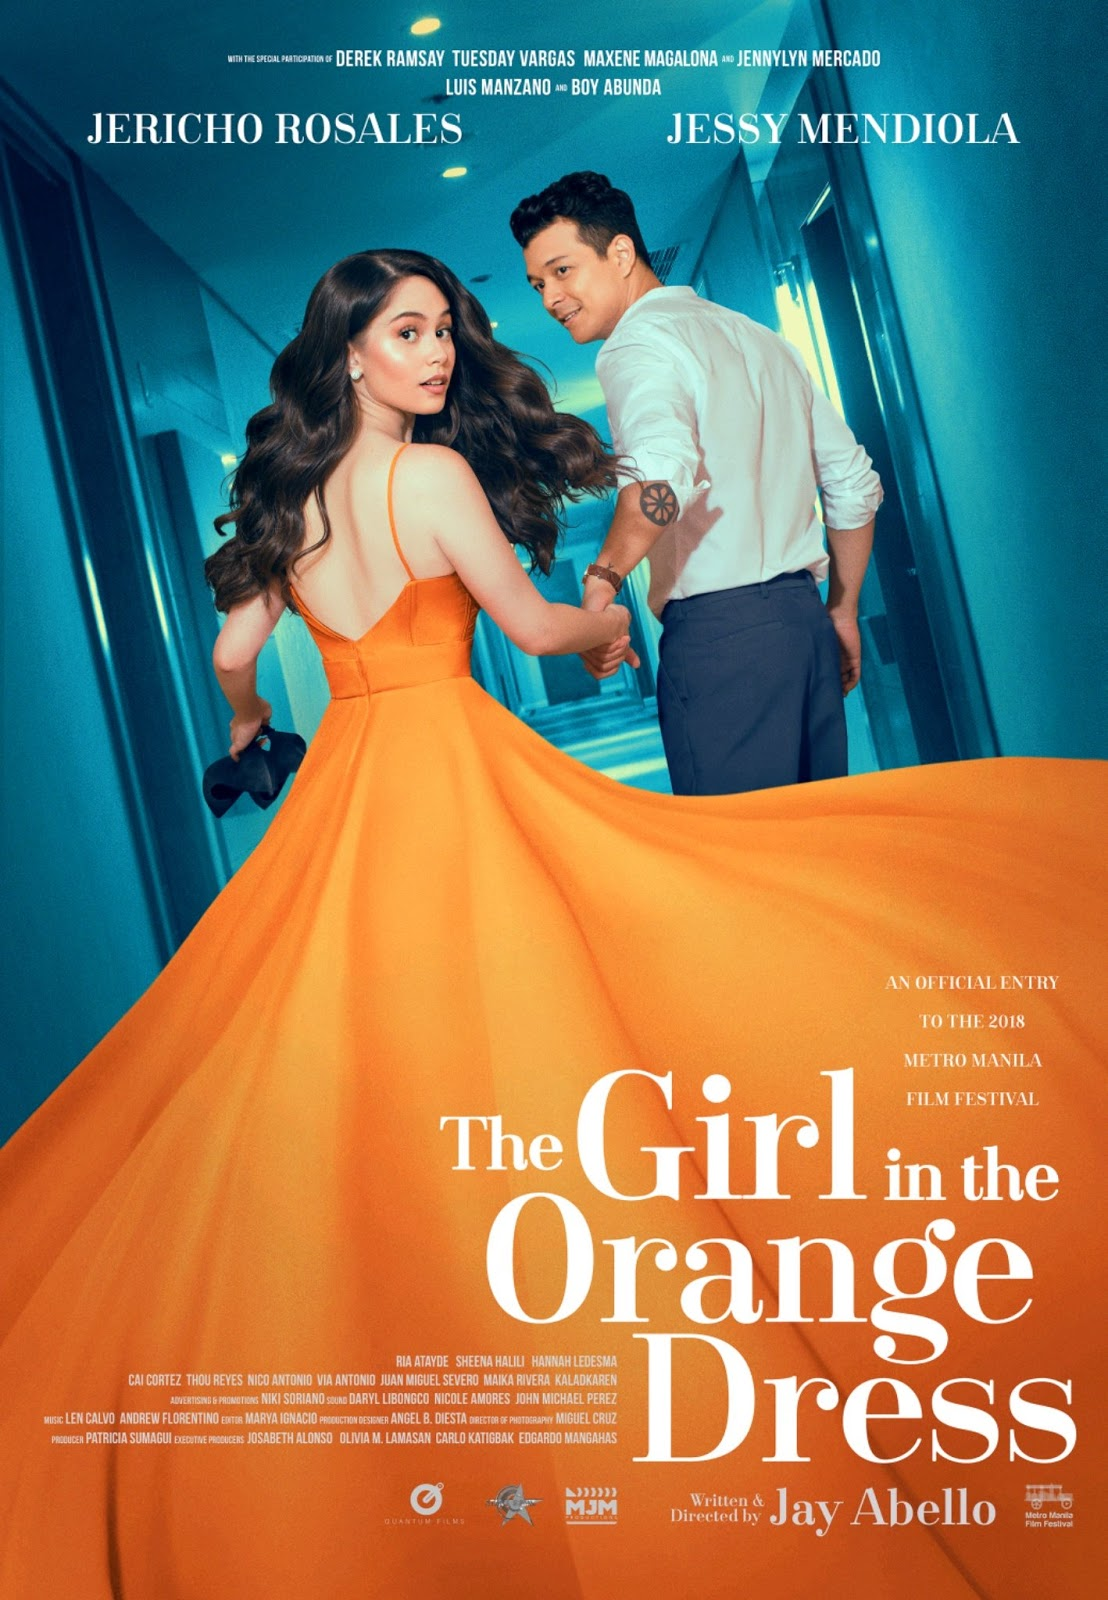 watch filipino bold movies pinoy tagalog poster full trailer teaser The Girl In The Orange Dress